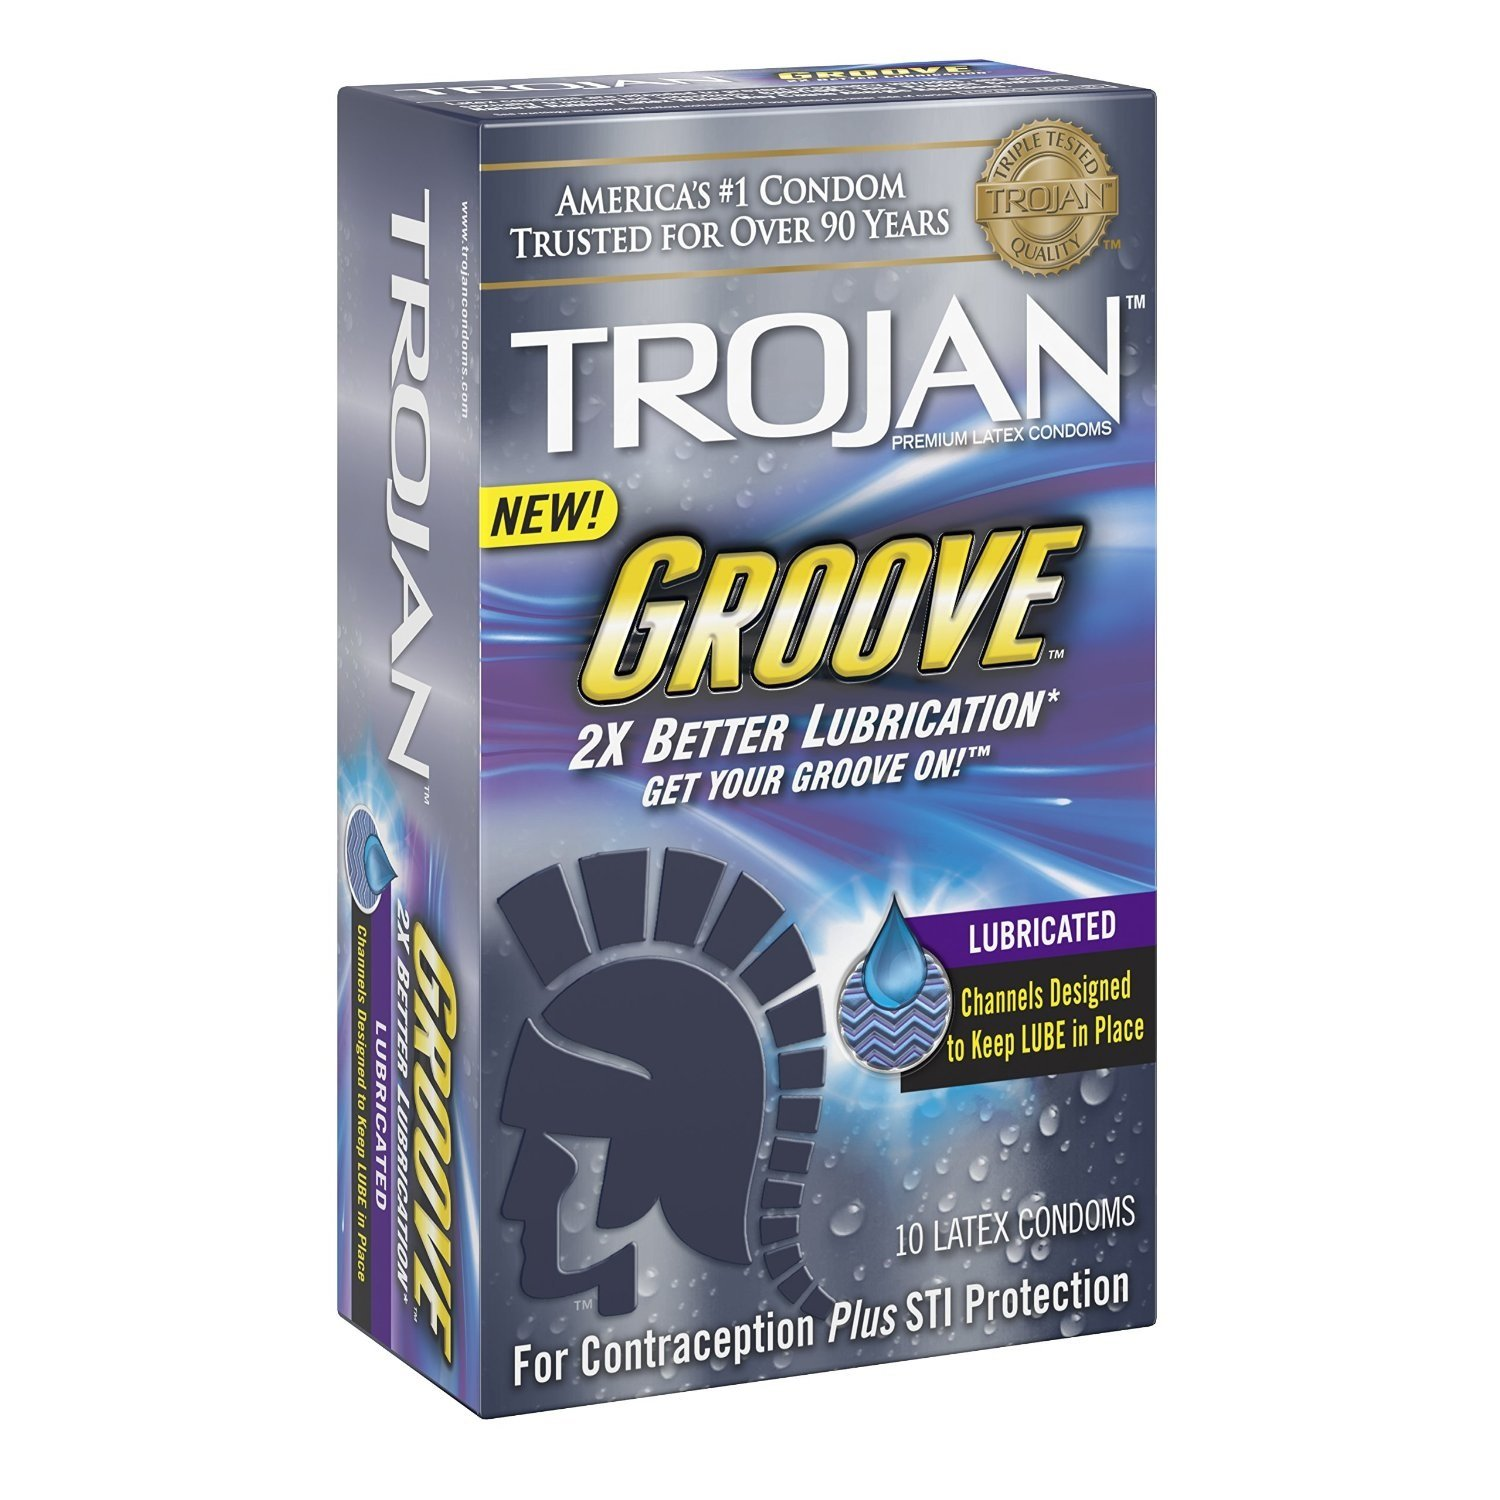 Trojan Groove Lubricated Condoms, CmbUti,10 Count Per Box (Pack of 2) by Trojan